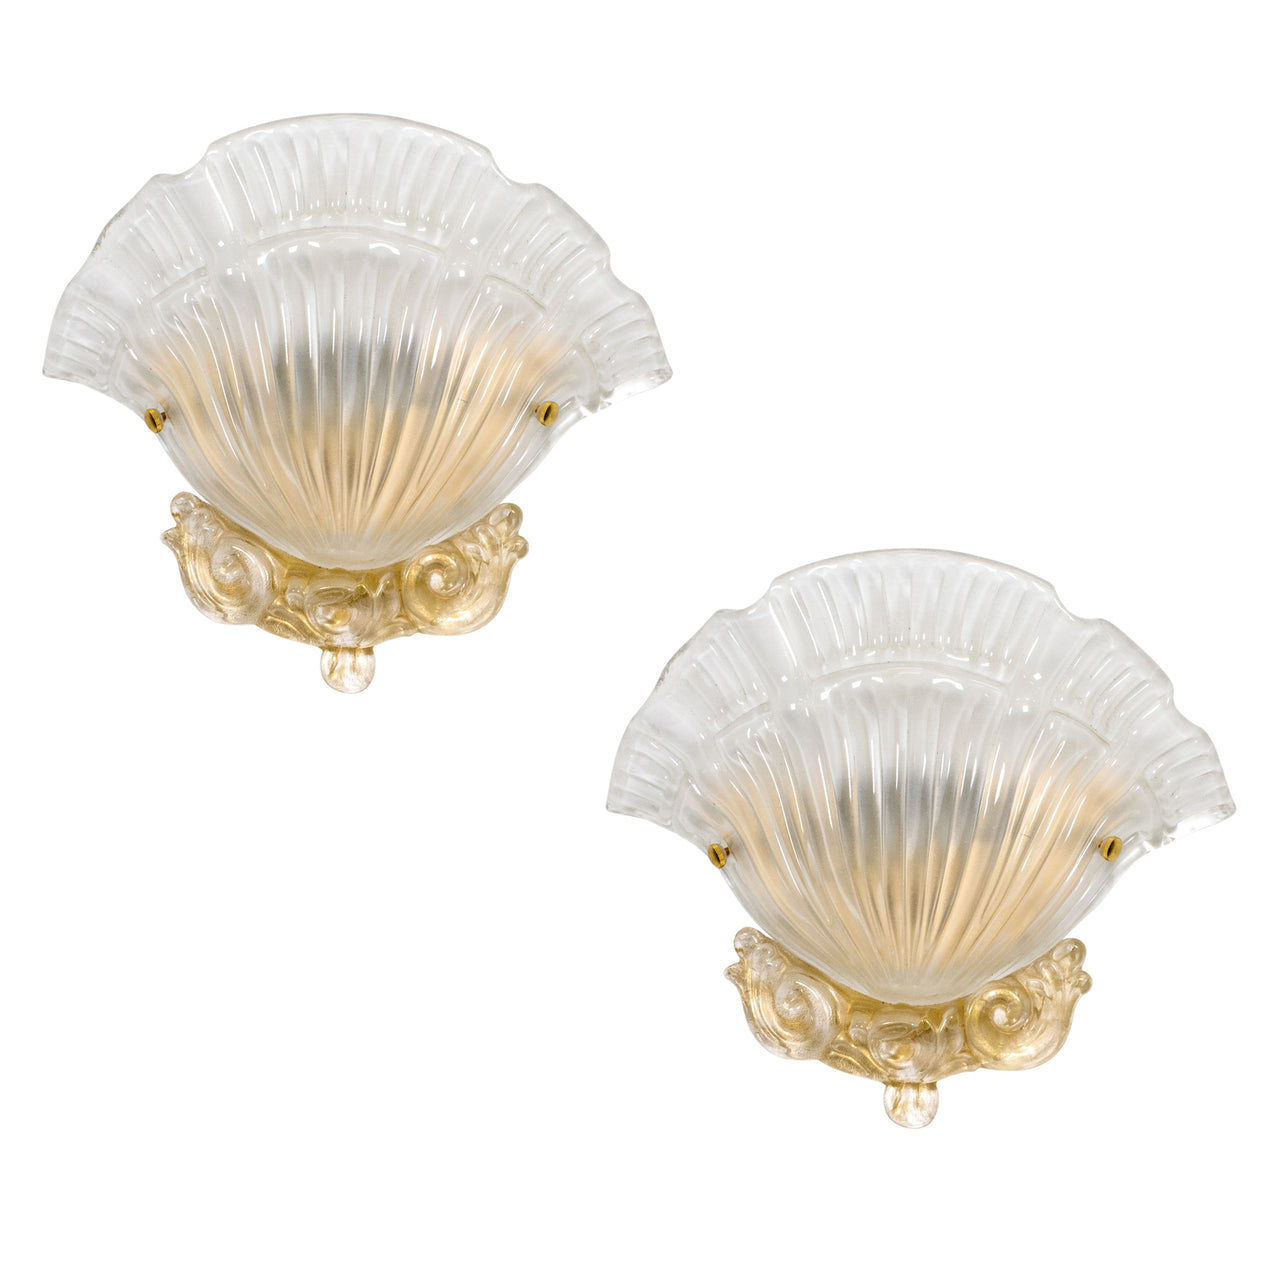 A Pair of Shell form Murano Wall Sconces